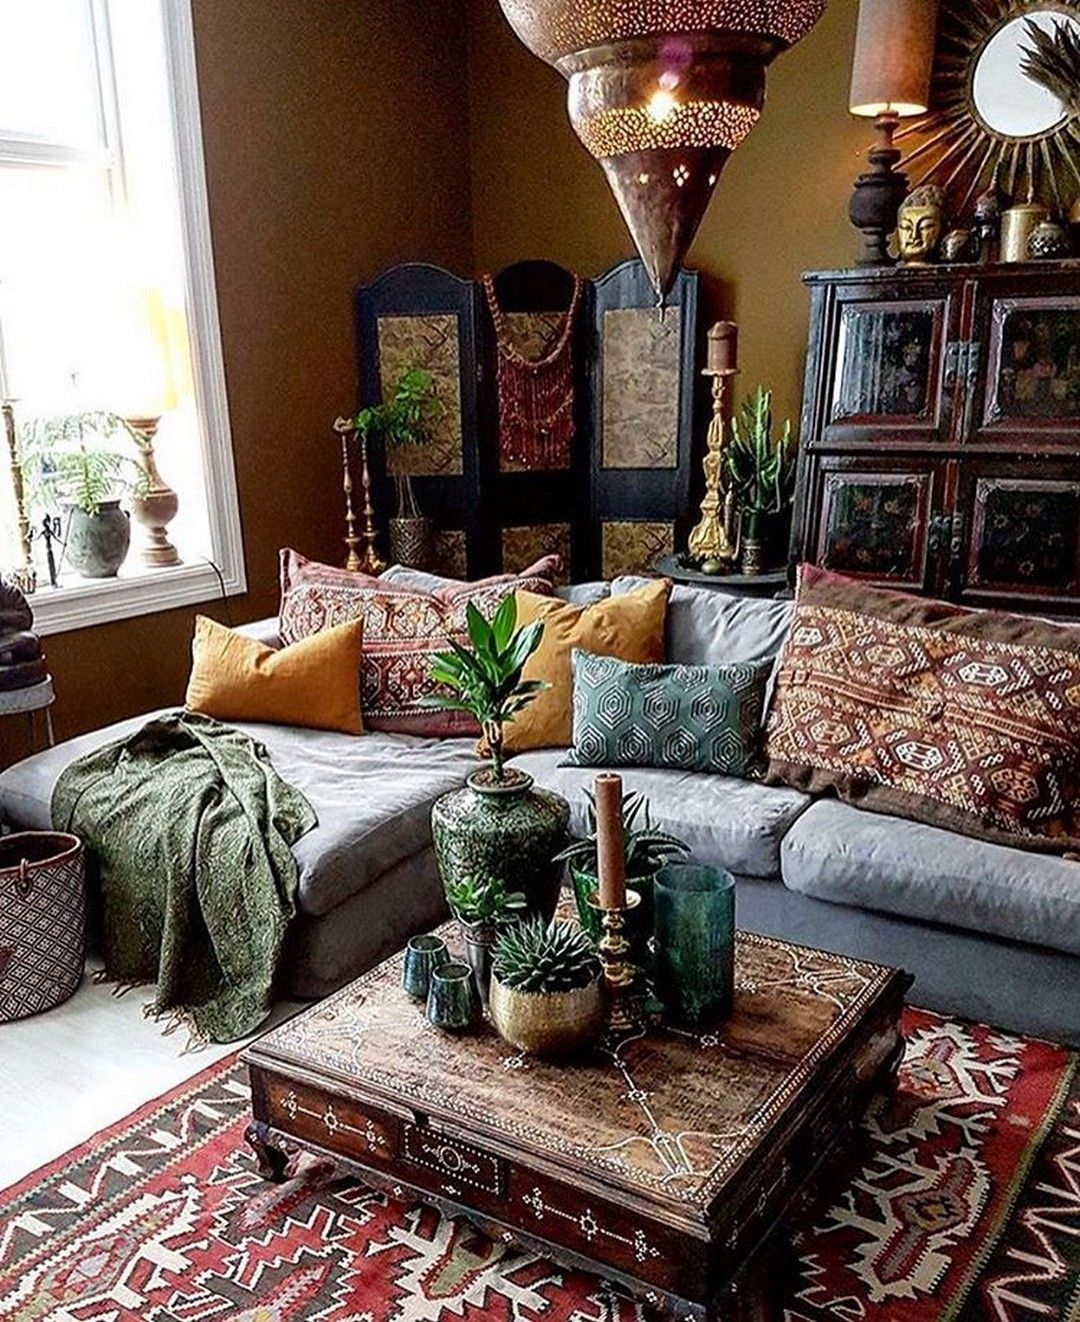 Bohemian Decor: DIY Indoor Bohemian Decorating Ideas